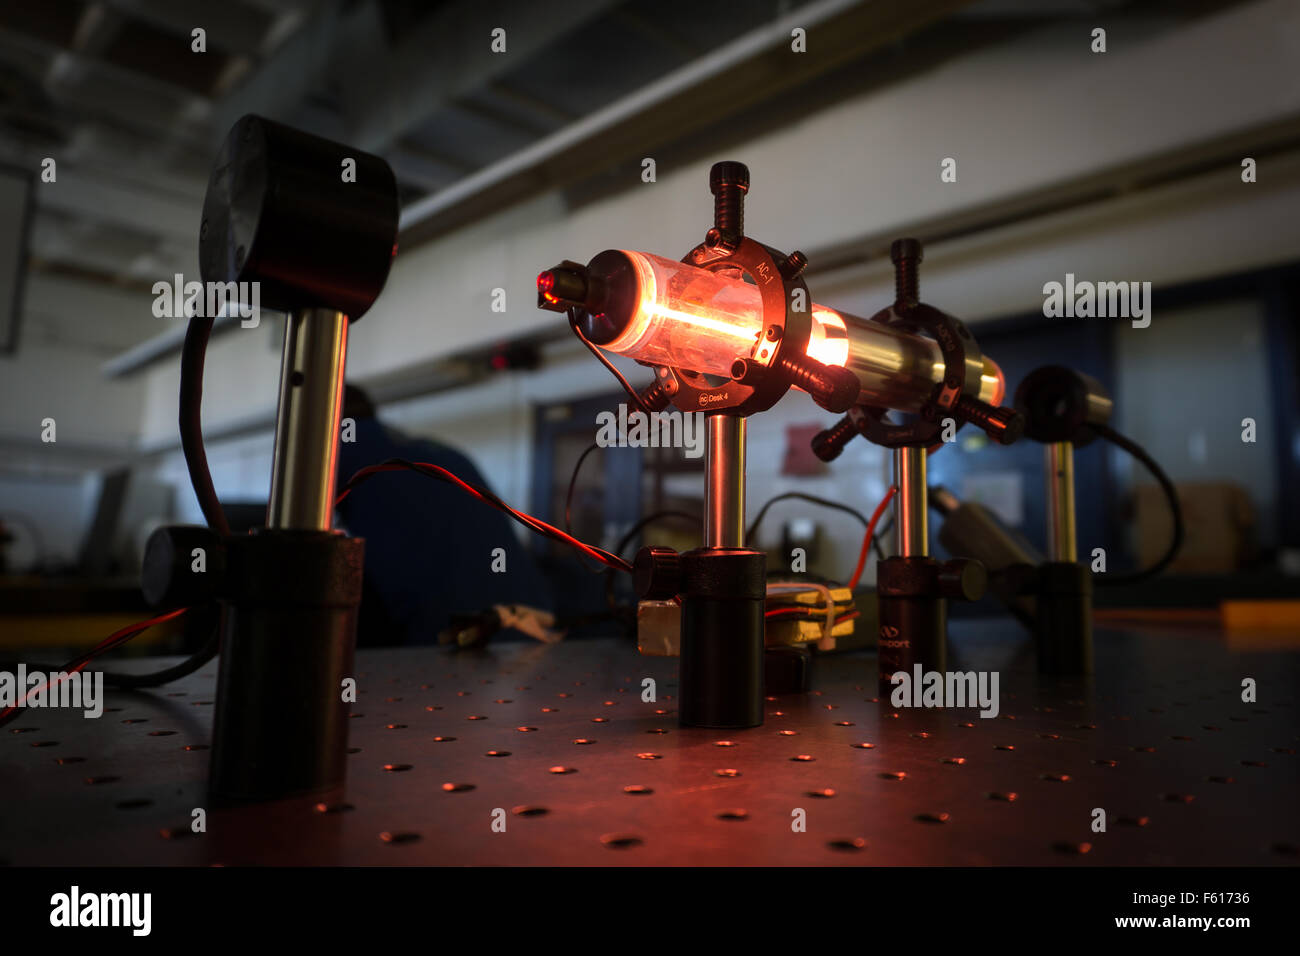 A HeNe laser on an optics bench. - Stock Image